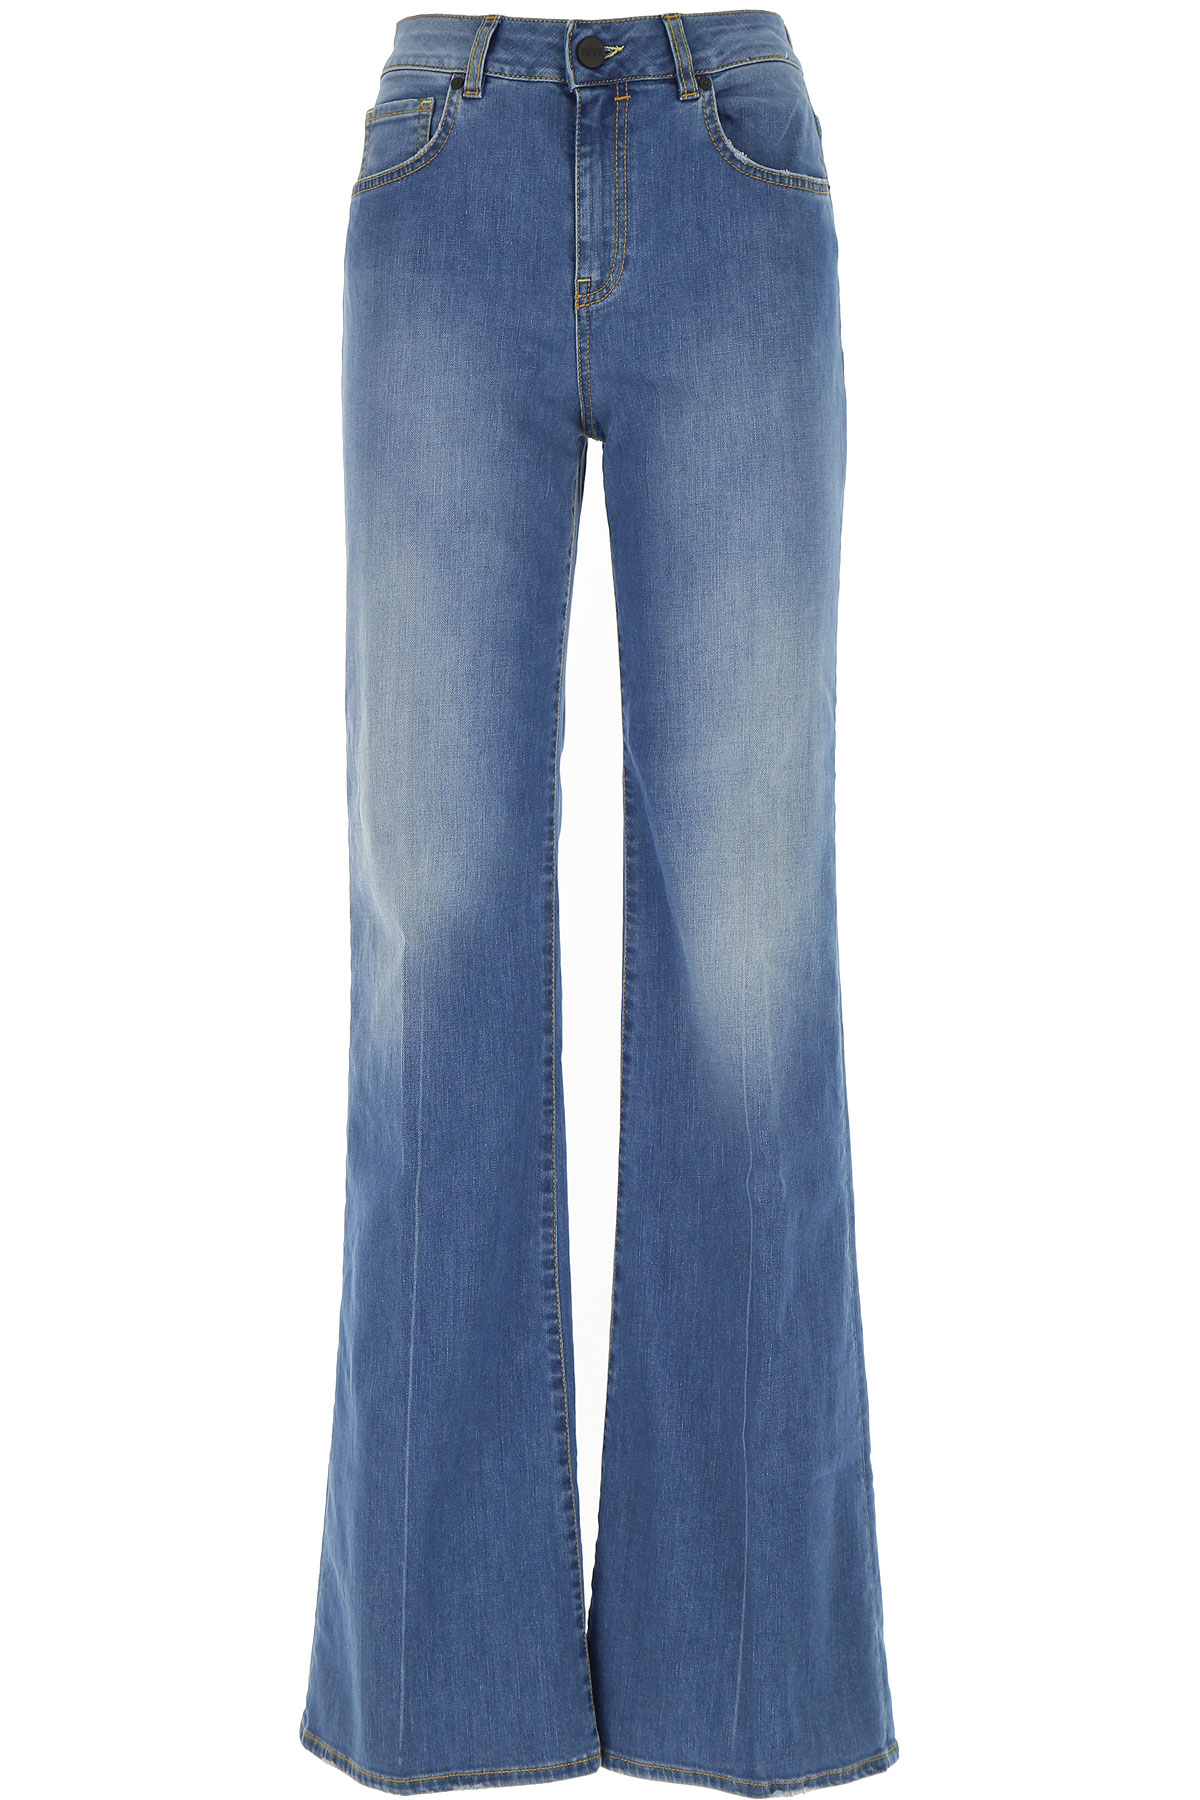 Pinko Jeans, Denim, Cotton, 2017, 26 27 28 29